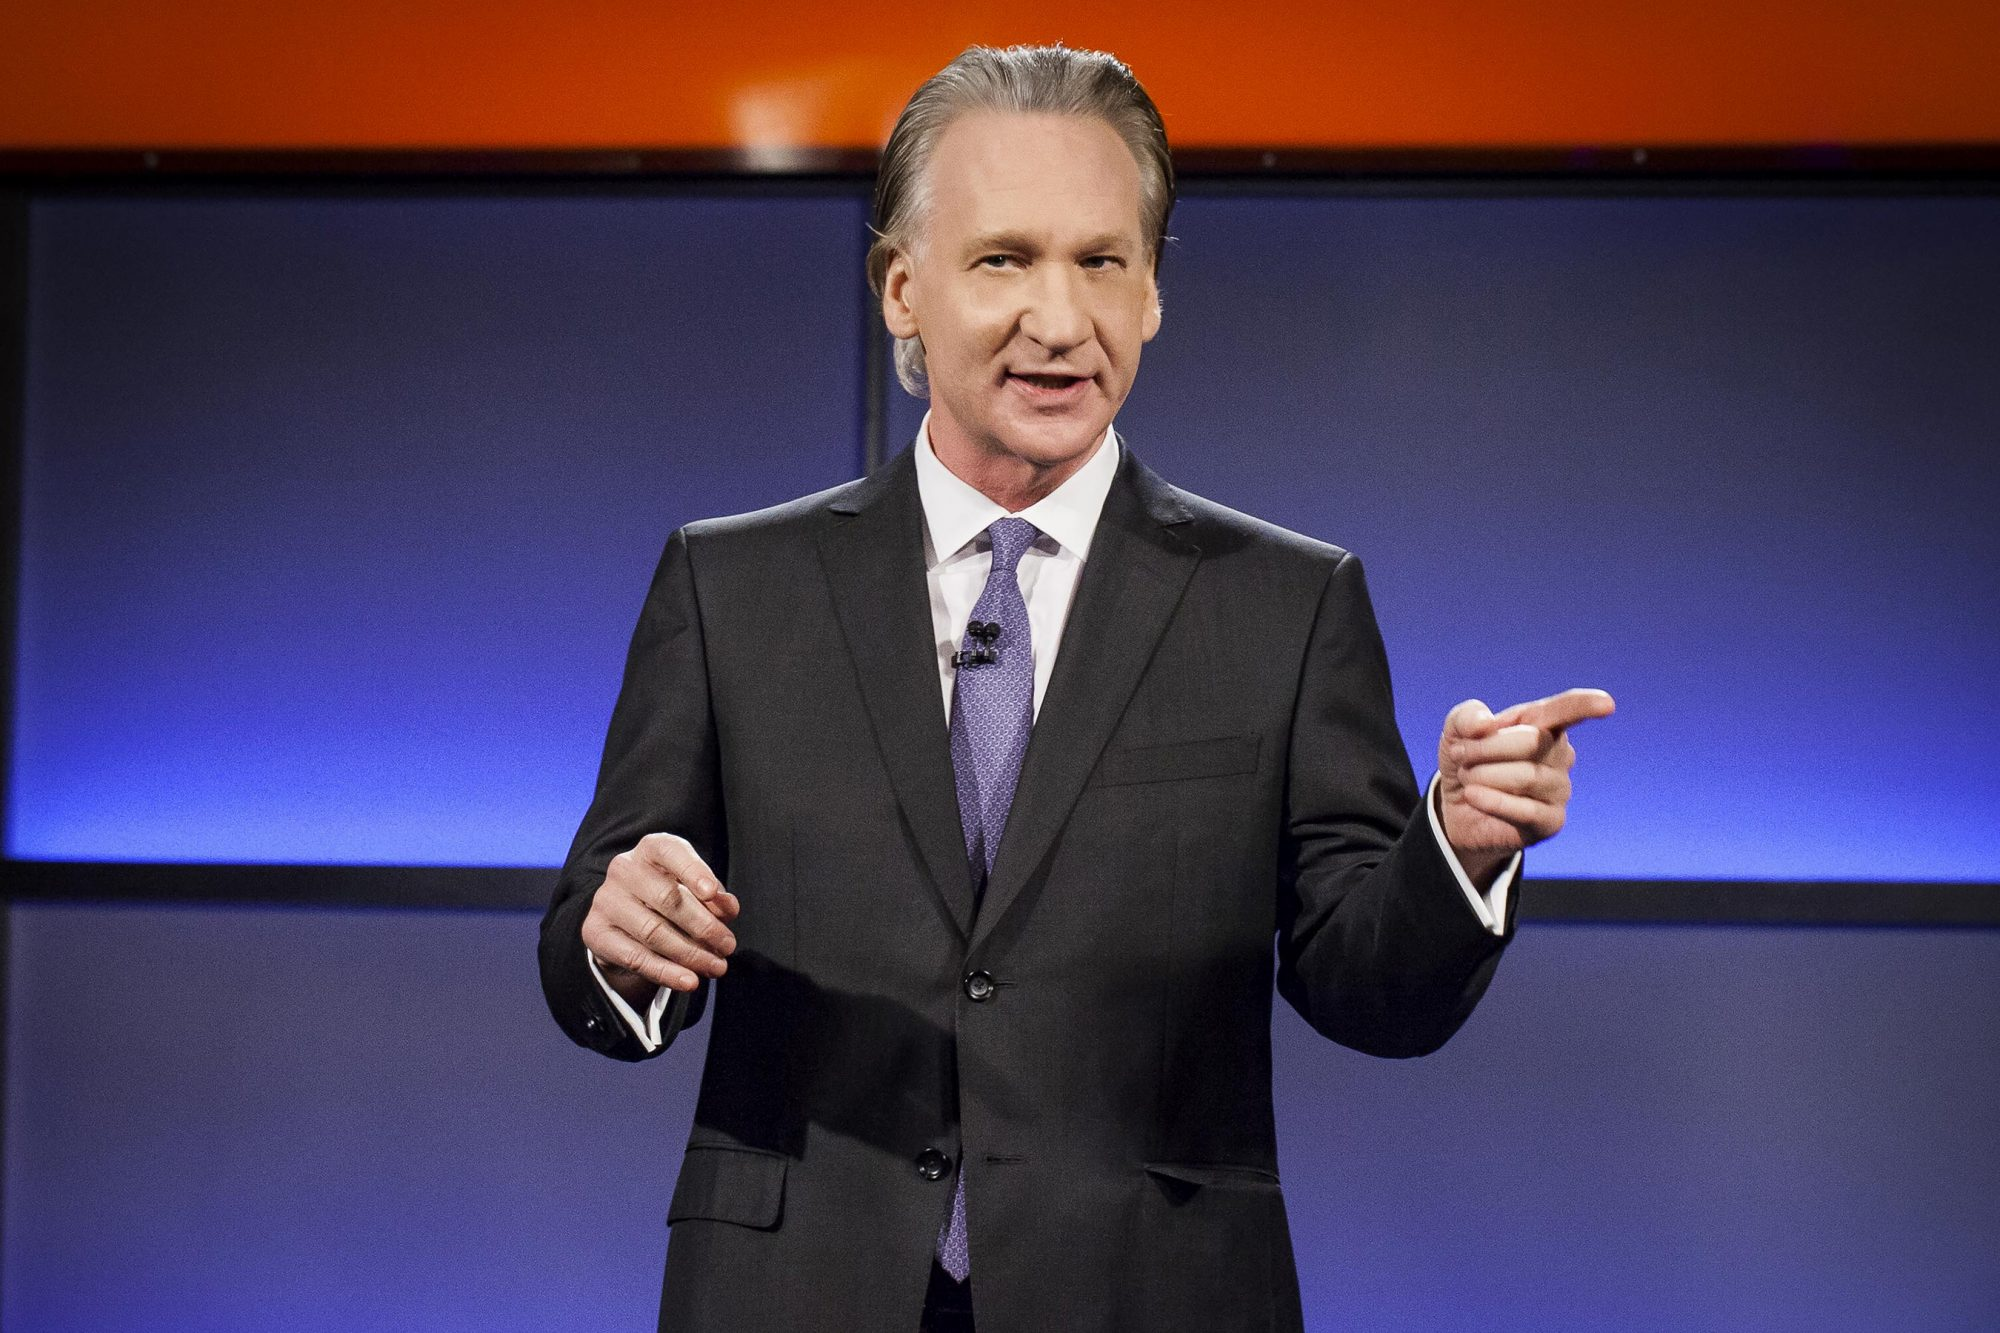 Real Time With Bill Maher 1/20/2017Pictured: Bill Maher